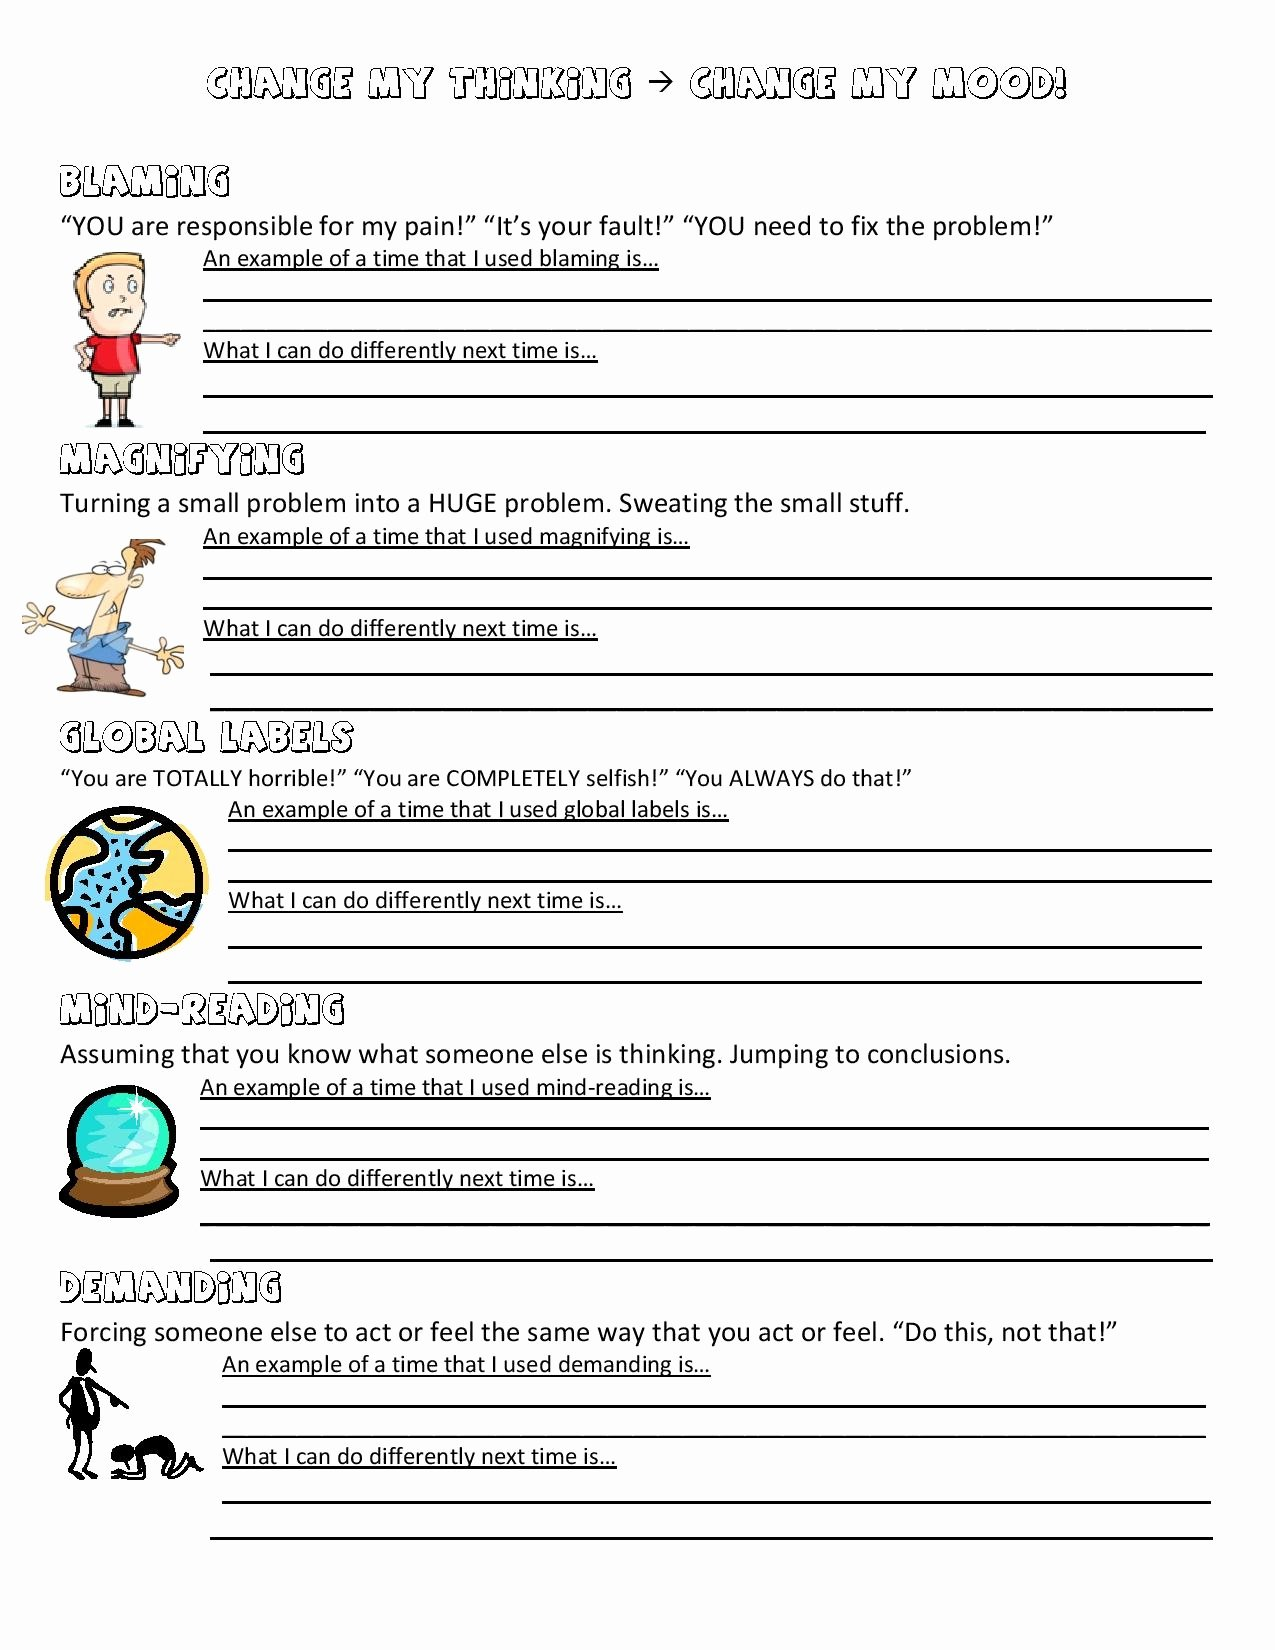 Anger Management Worksheet for Teenagers Fresh Anger Management Worksheet